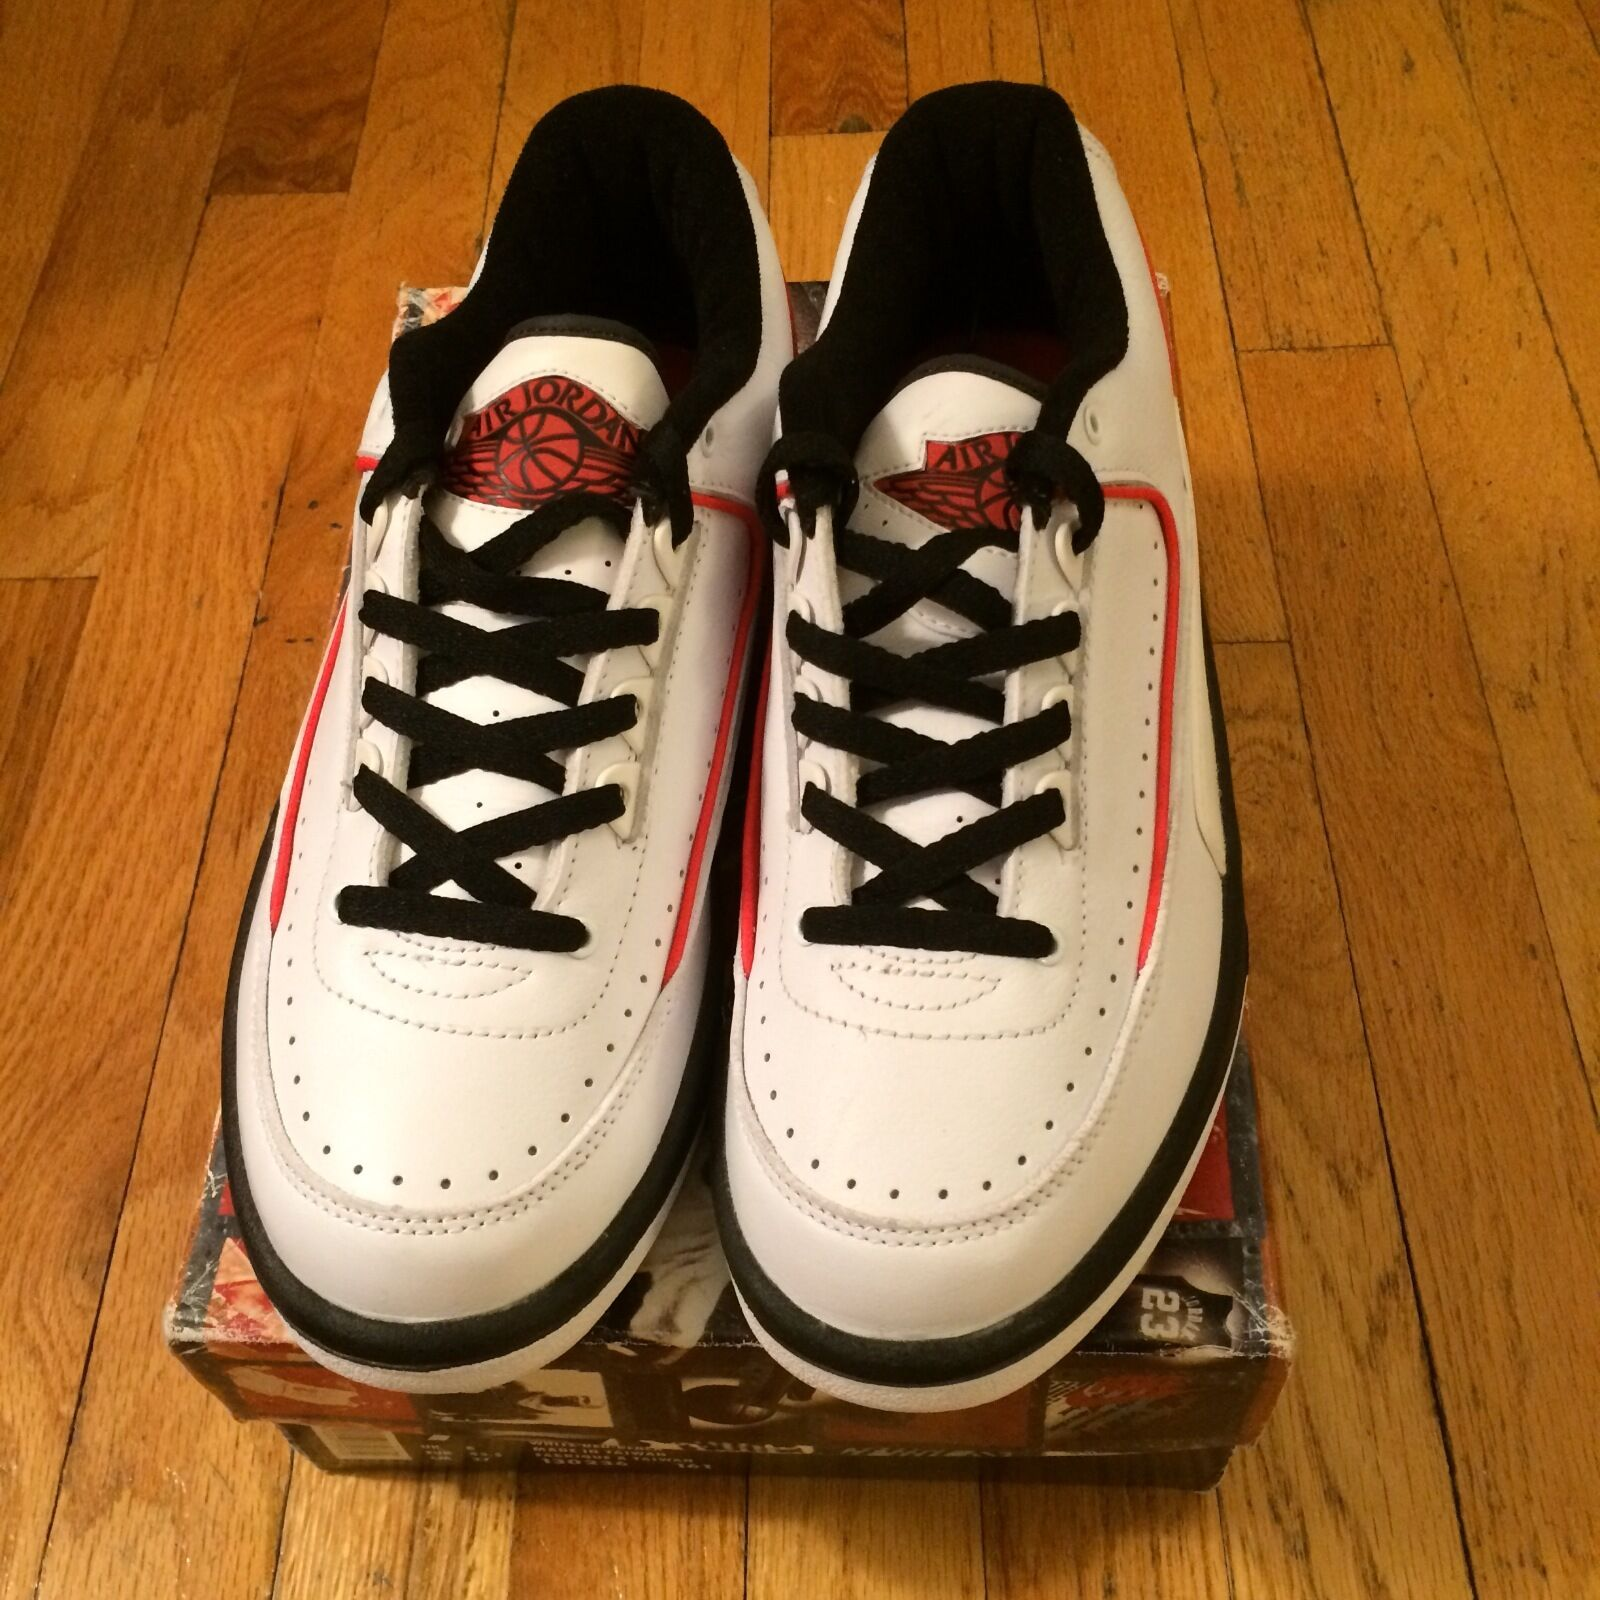 NIKE AIR JORDAN 2 LOW SIZE 9 WHITE/BLK/RED 1995 Seasonal clearance sale